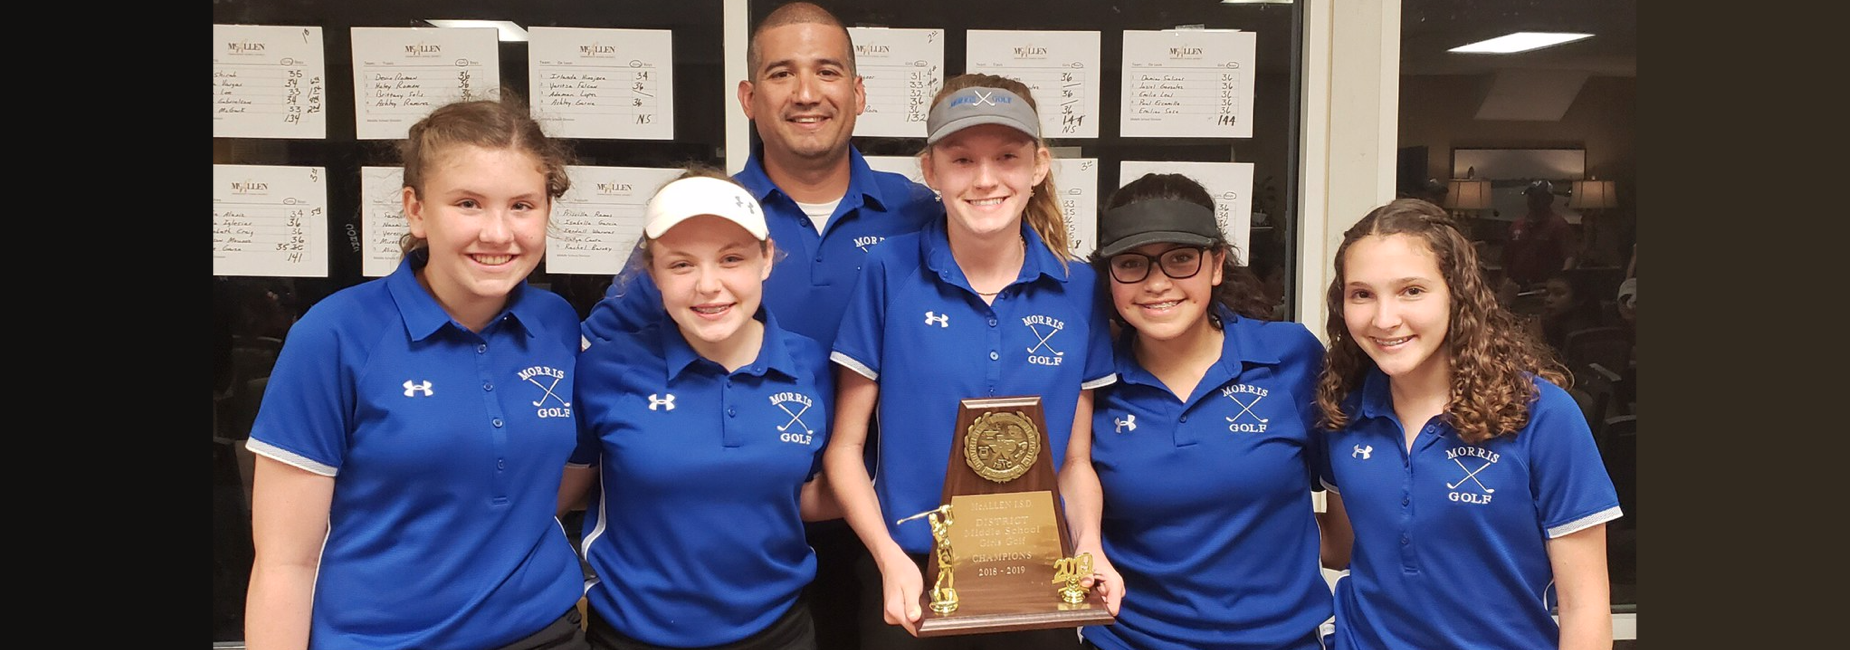 Girls Golf District Champions